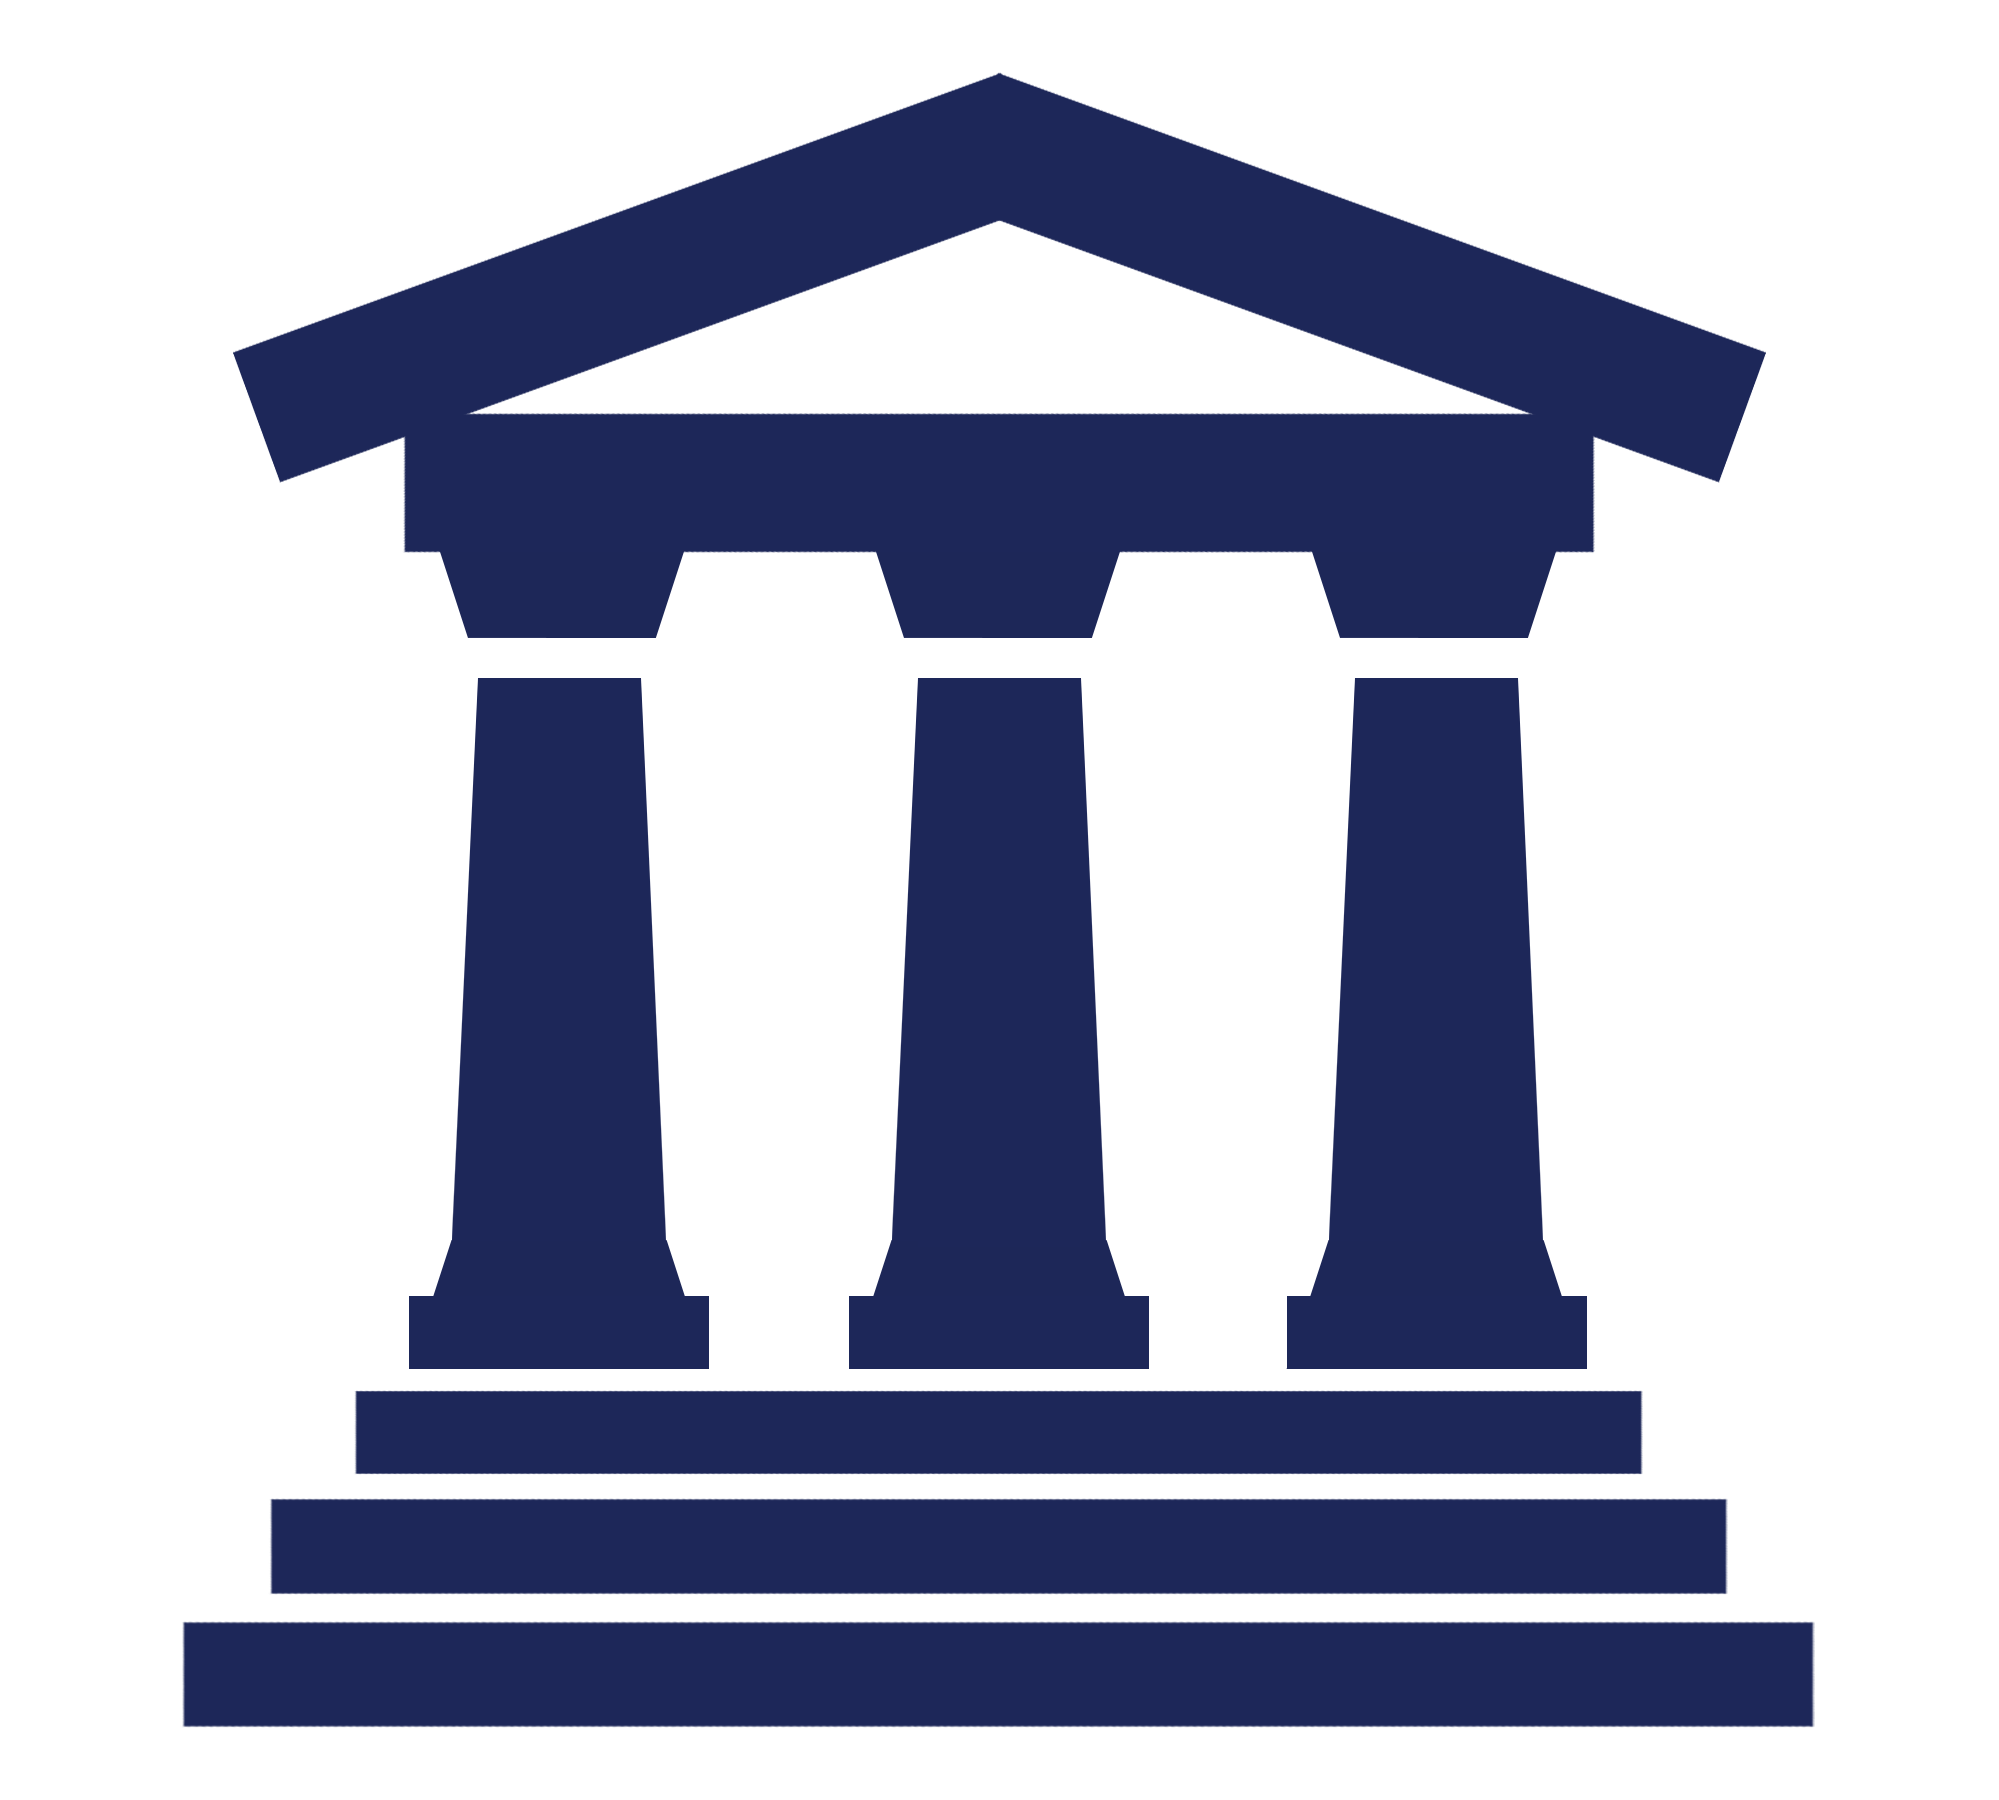 Banking Clipart.